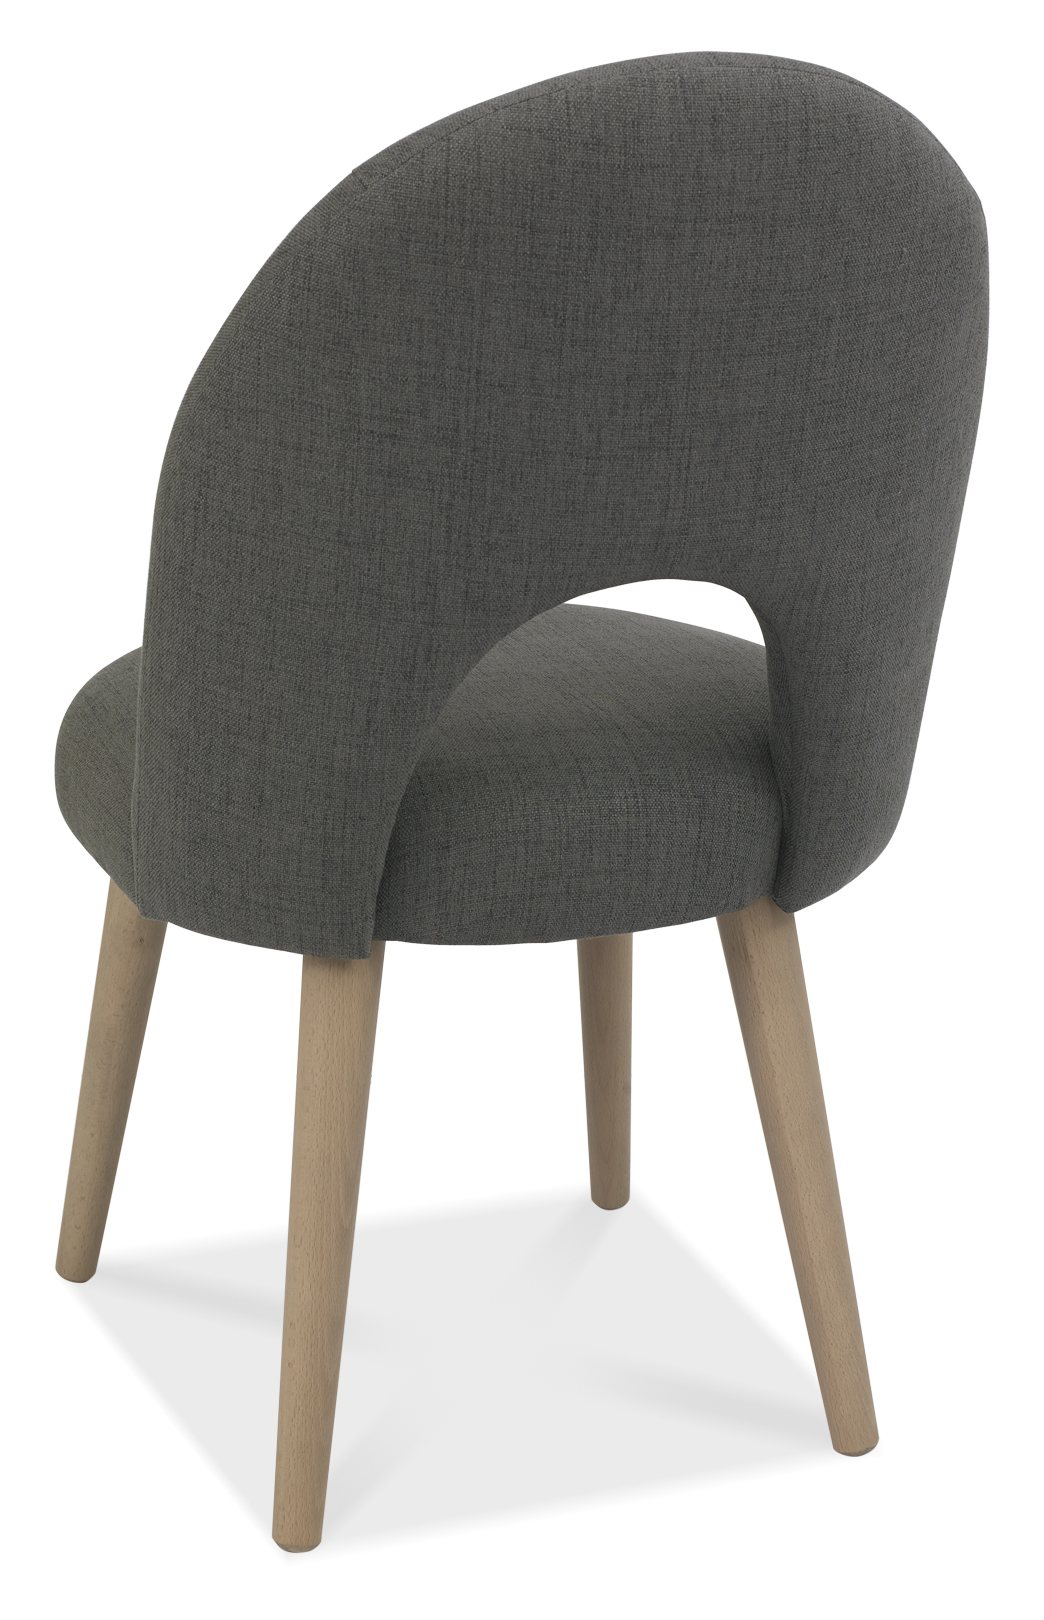 RETRO GREY FABRIC DINING CHAIR - BACK DETAIL